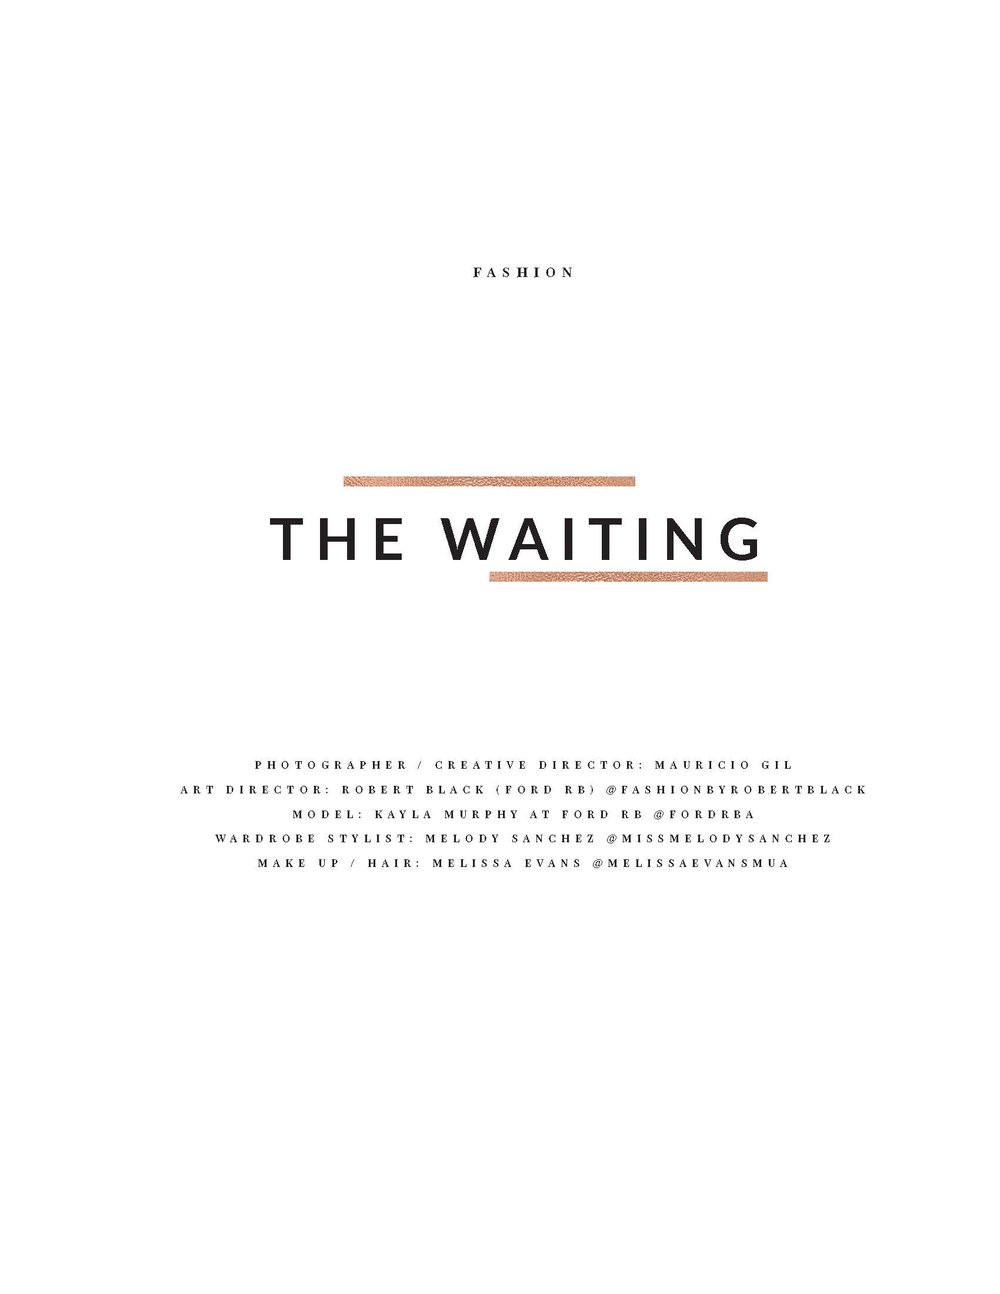 """""""The Waiting"""" Editorial. Wardrobe styling by Melody Sanchez, Design De Amore for Elegant Magazine. Photography by Mauricio Gilballon, hair and makeup by Melissa Evans HMUA and starring Kayla Murphy of the Ford/ Robert Black Agency."""